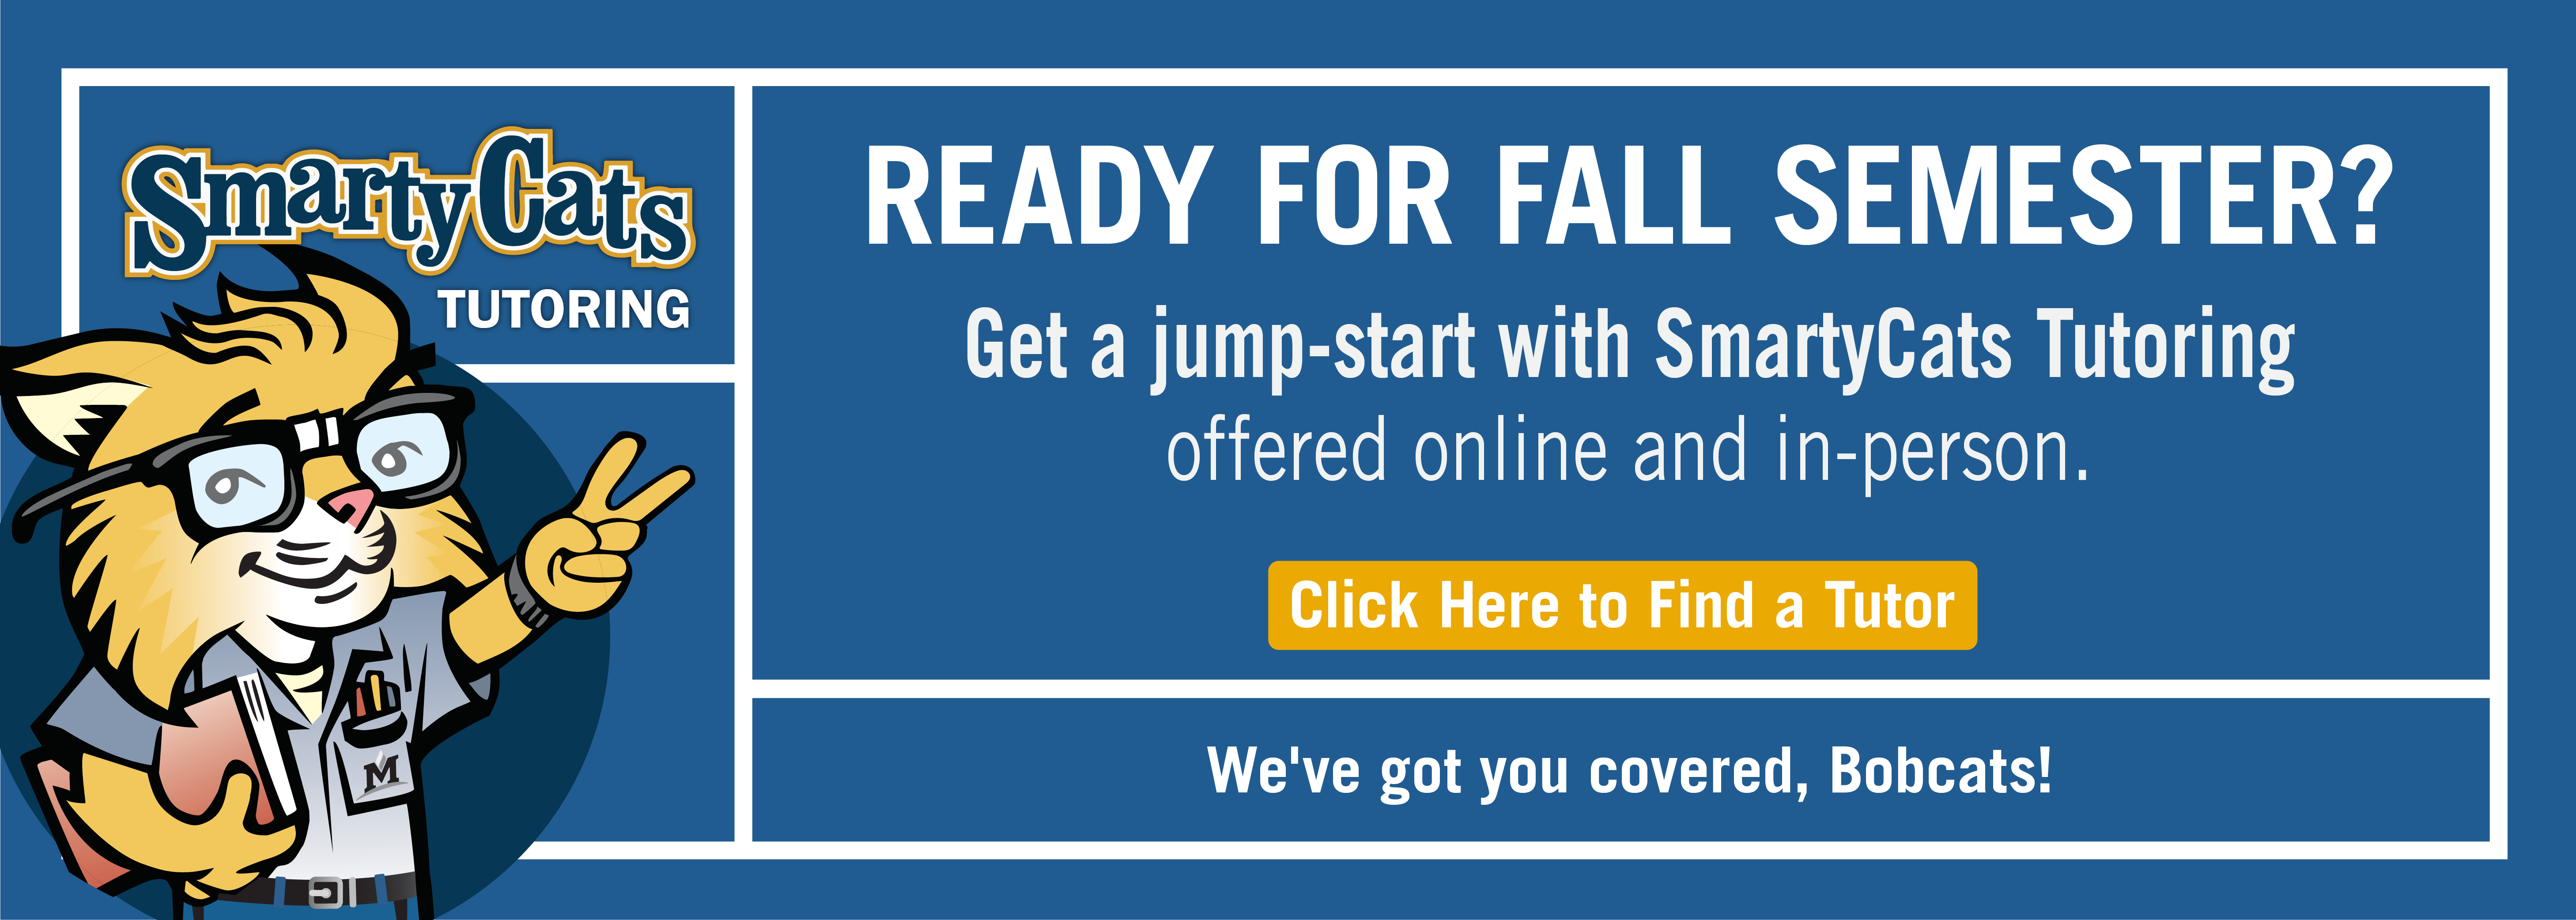 Ready for Fall Semester.  Get a jump-start with SmartyCats tutoring online or in-person!